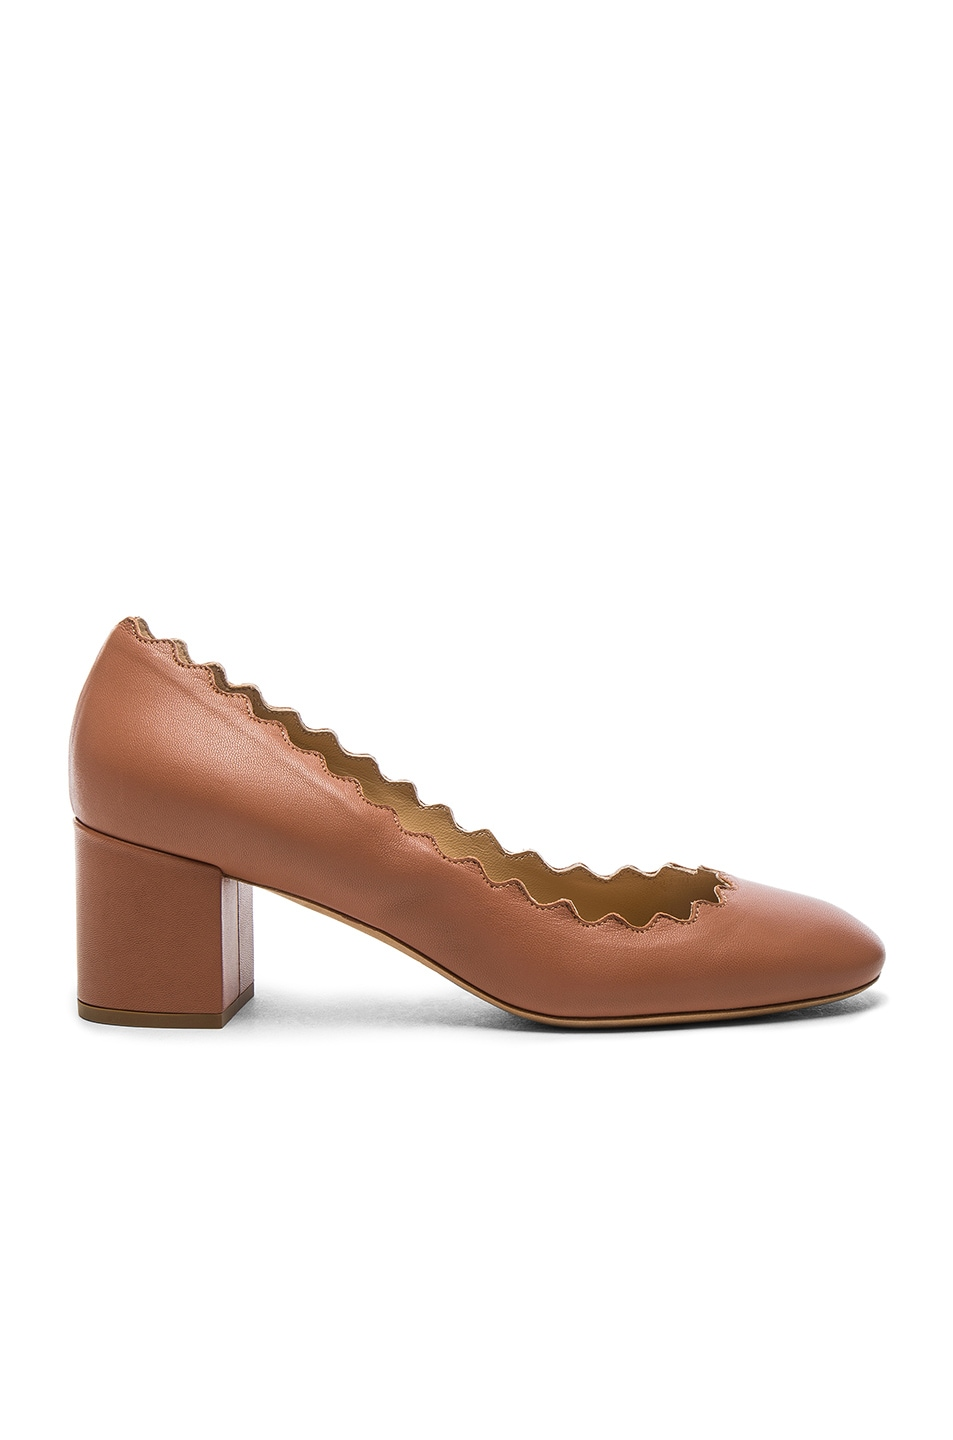 Image 1 of Chloe Lauren Leather Scallop Pumps in Blush Pink